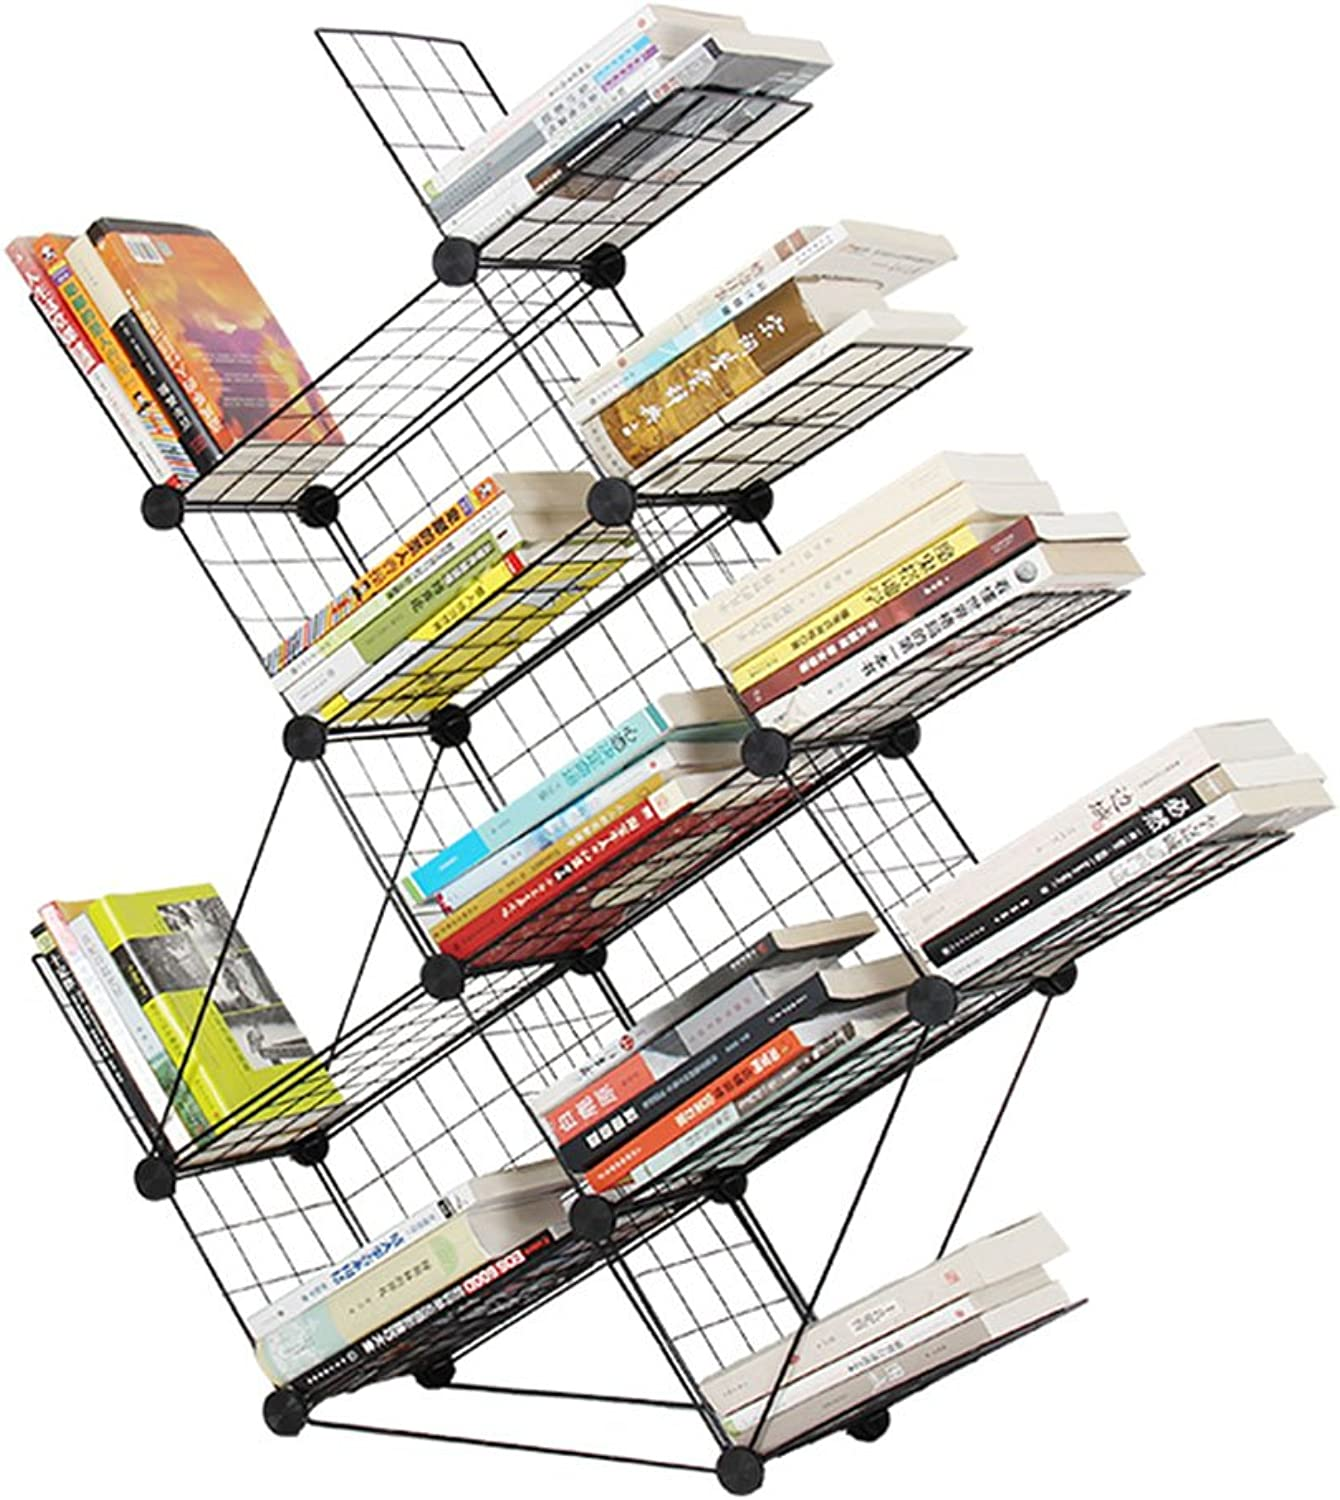 Bookcases, Cabinets Shelves Personality Simple Assembly Wrought Iron Floor Bookshelf Magazine Book Rack Imitation Tree Creative Rack Household Shelf Bookshelf That can be Moved (Removable)